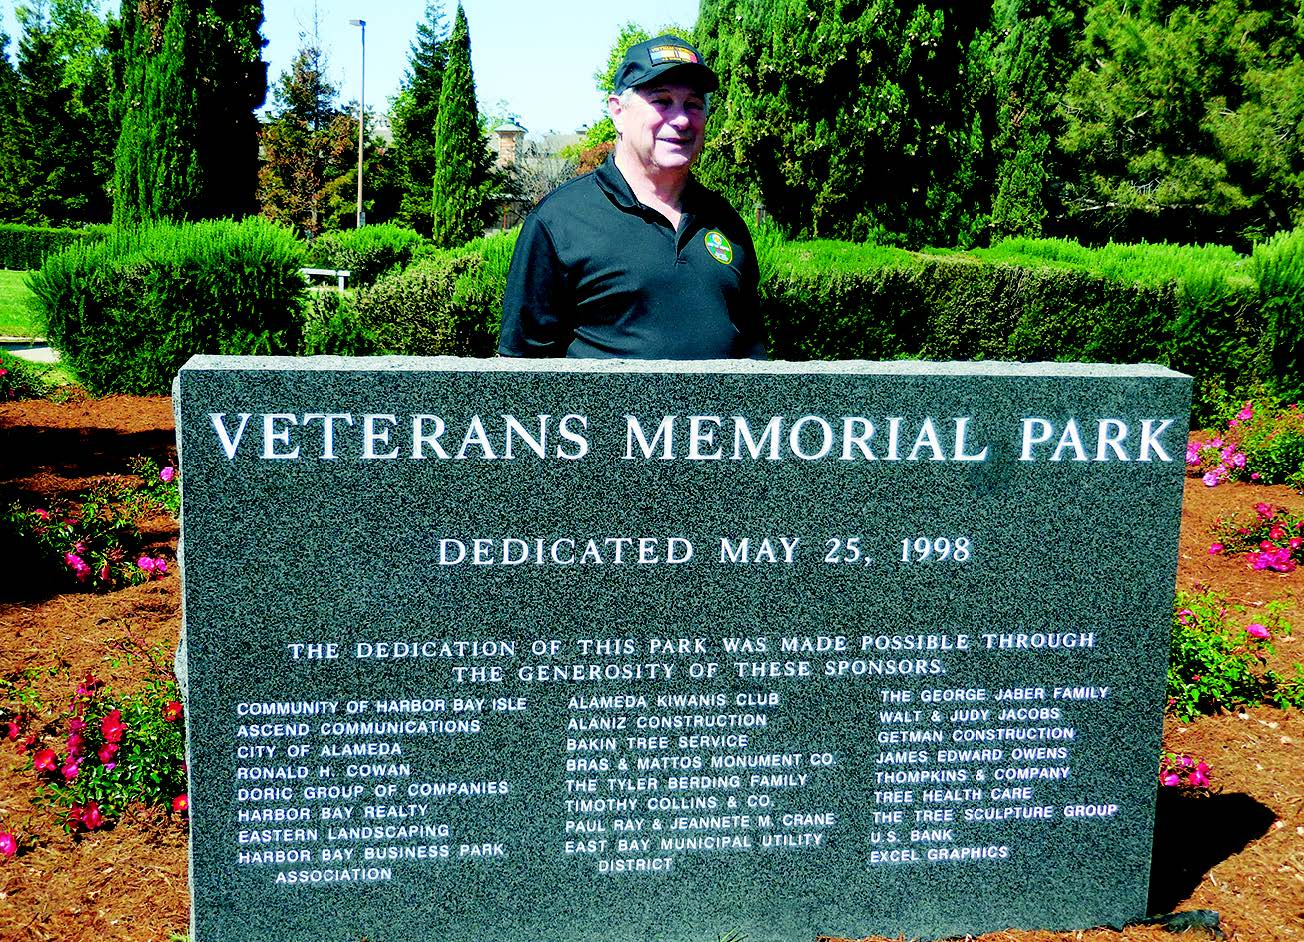 Arnold Dos Santos was among those who formally dedicated Alameda's Veterans Memorial Park back in 1998.